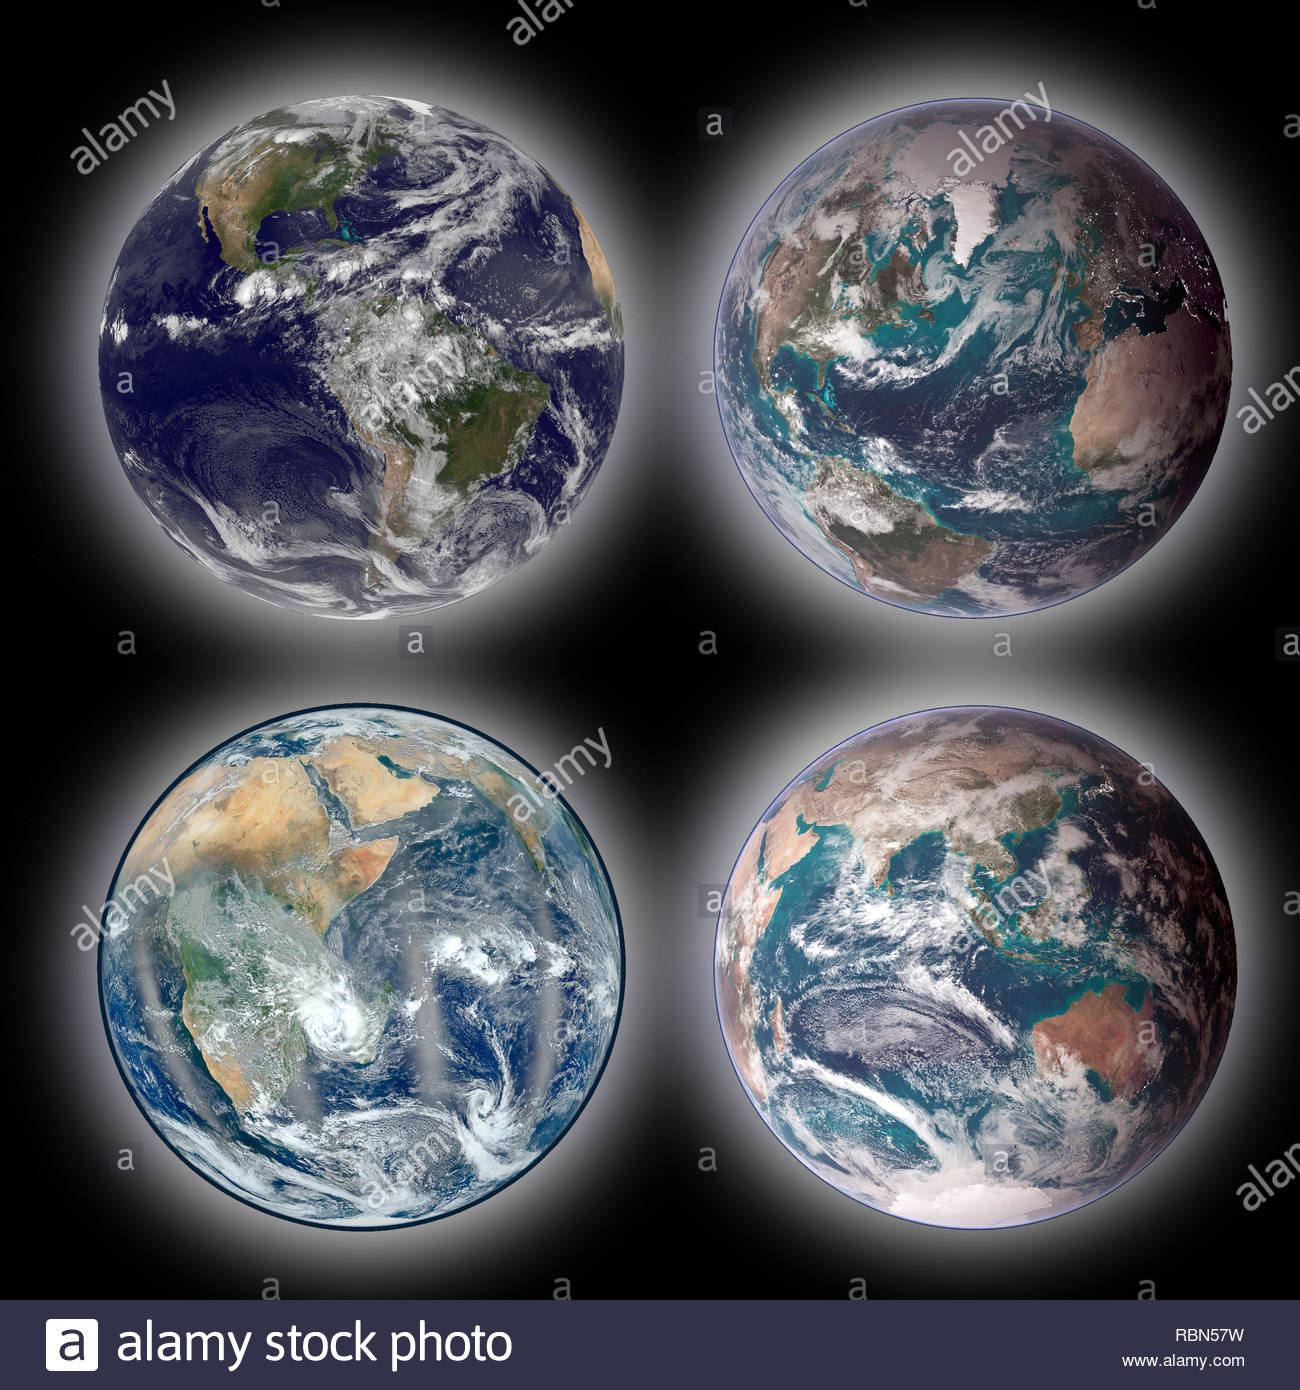 Planet Earth from space. Image elements furnished by NASA. - Stock Image